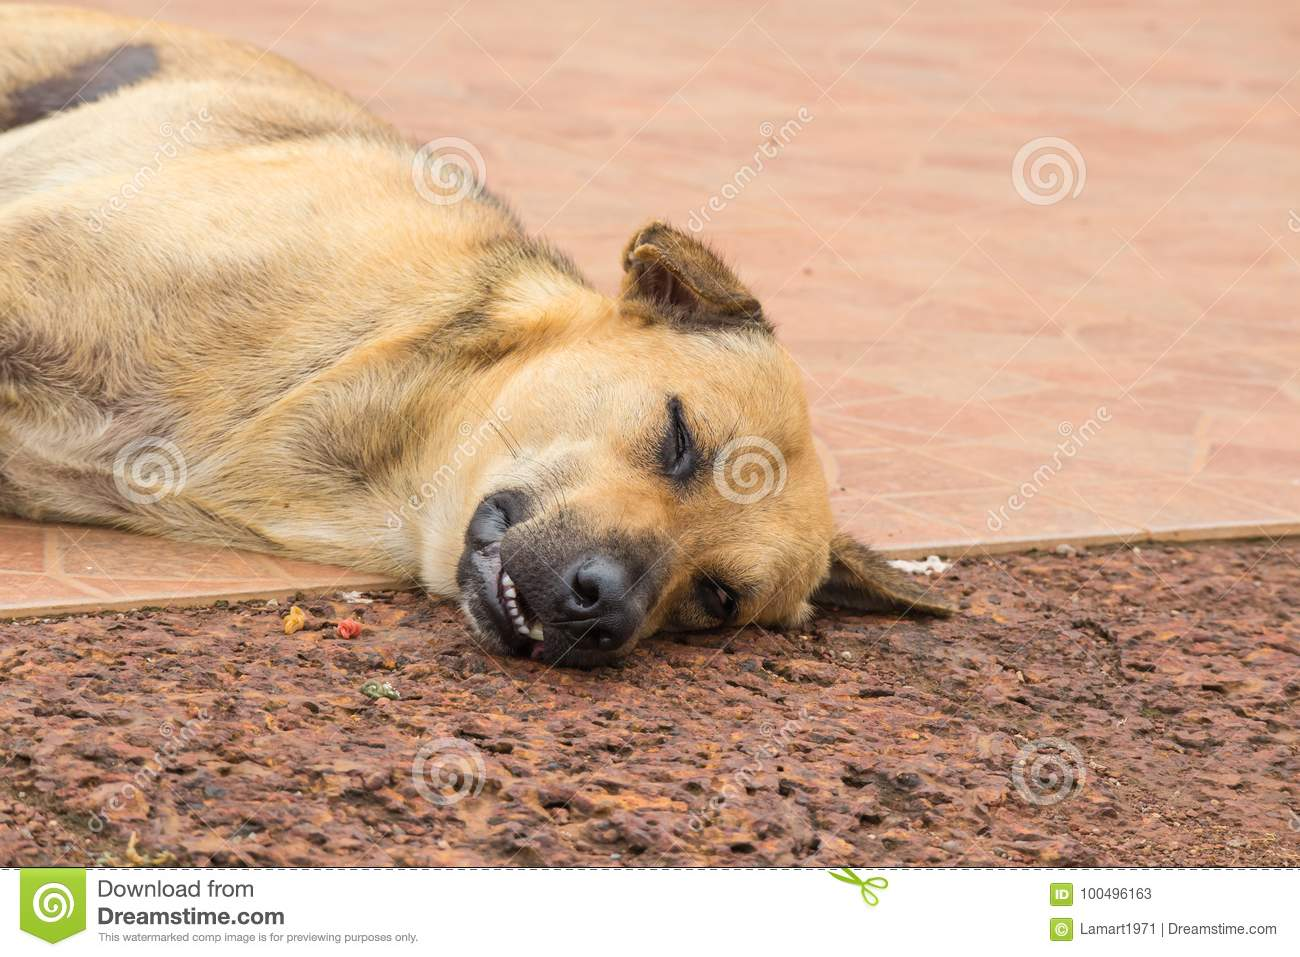 64d12a9f896 Brown Dog Sleep On The Ground Stock Image - Image of mammal